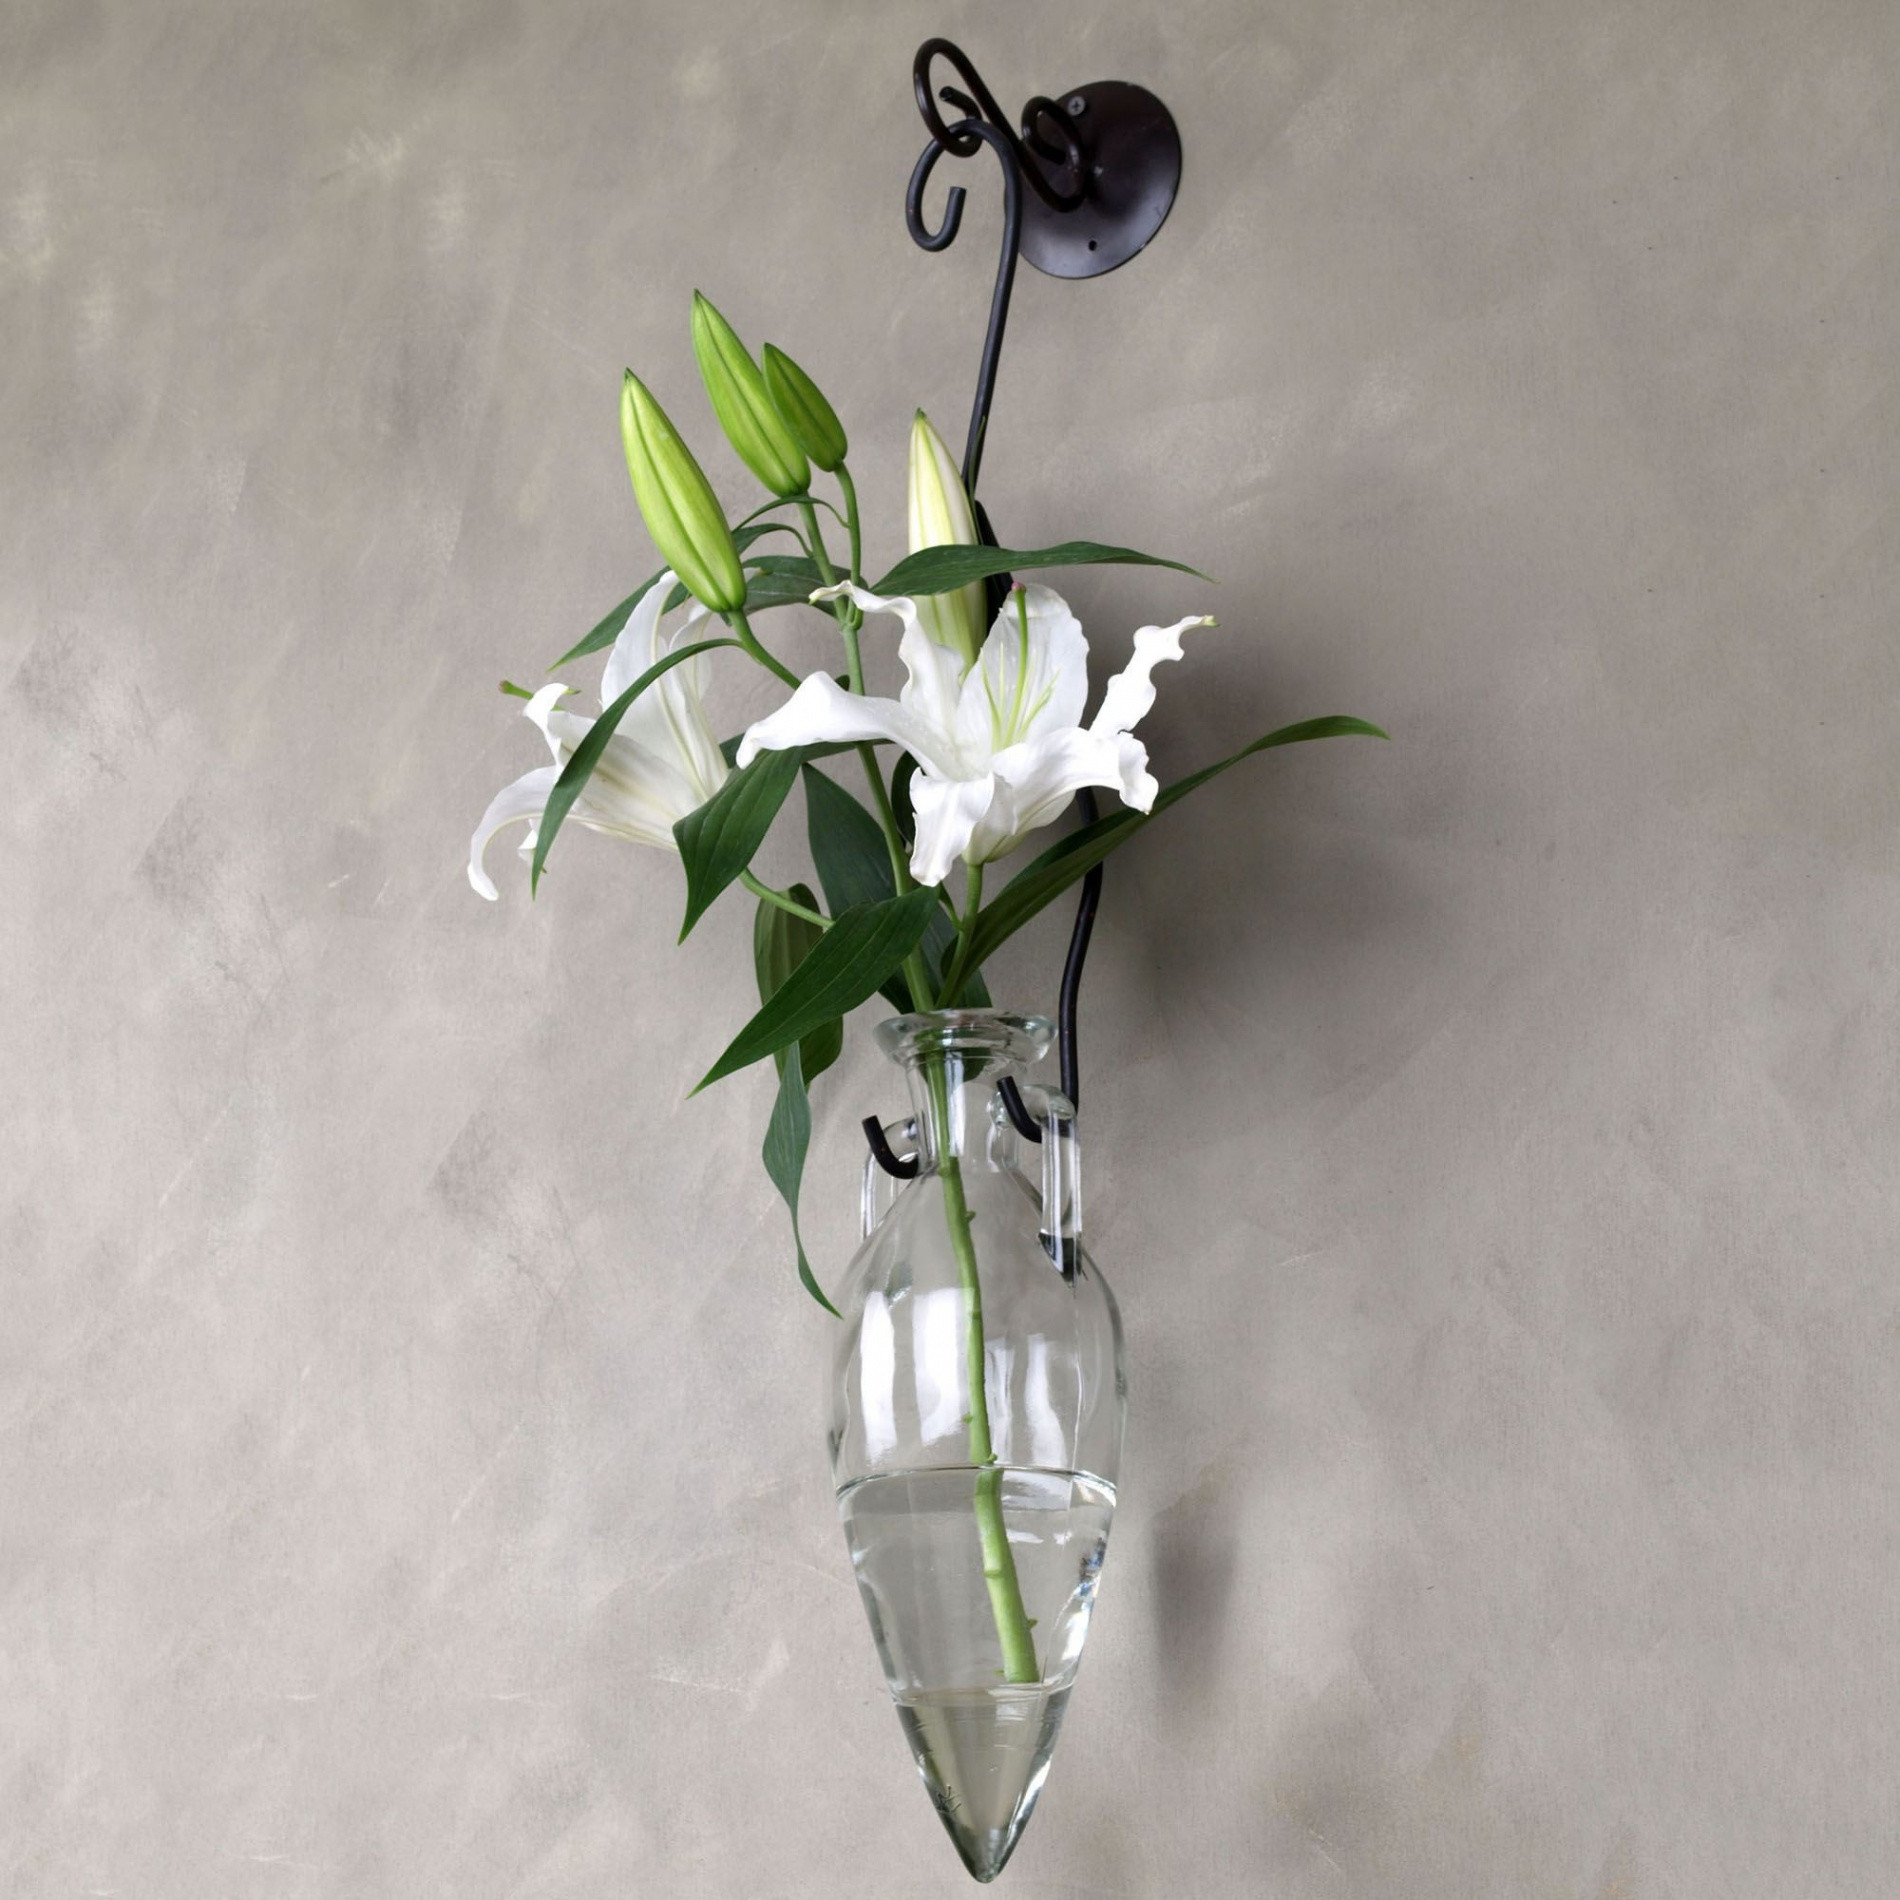 cheap tall white vases of h vases wall hanging flower vase newspaper i 0d scheme wall scheme within h vases wall hanging flower vase newspaper i 0d scheme wall scheme vase blanc deco